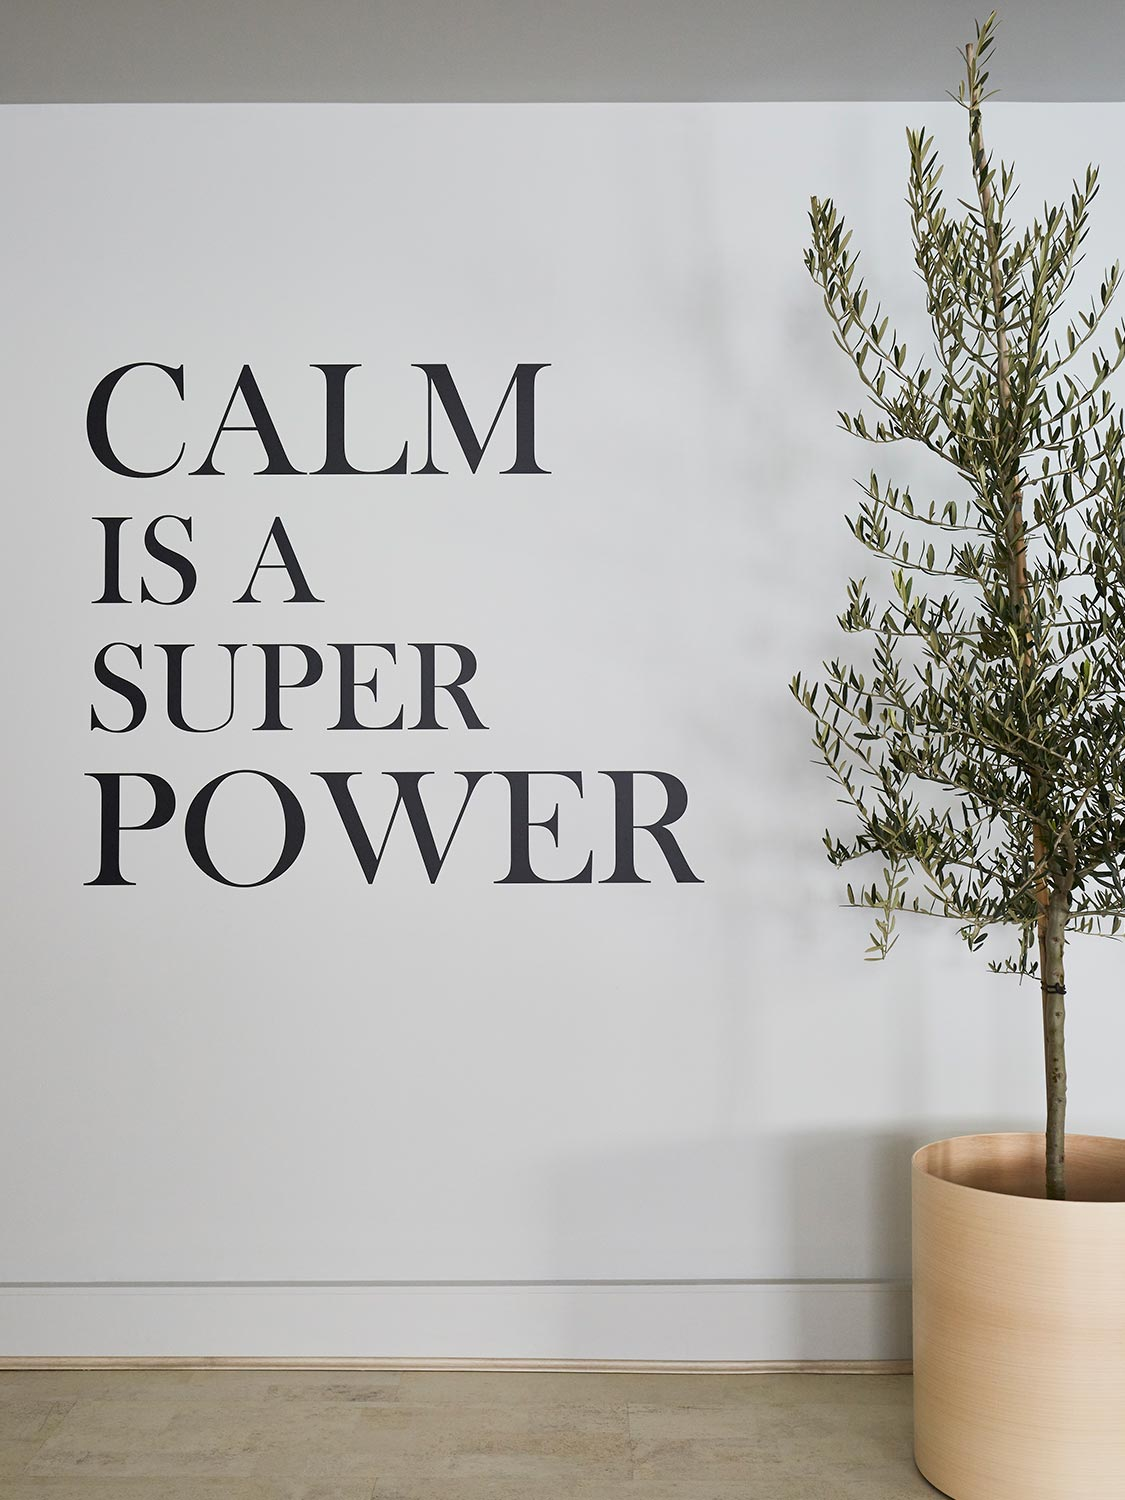 calm is a super power inspirational picture